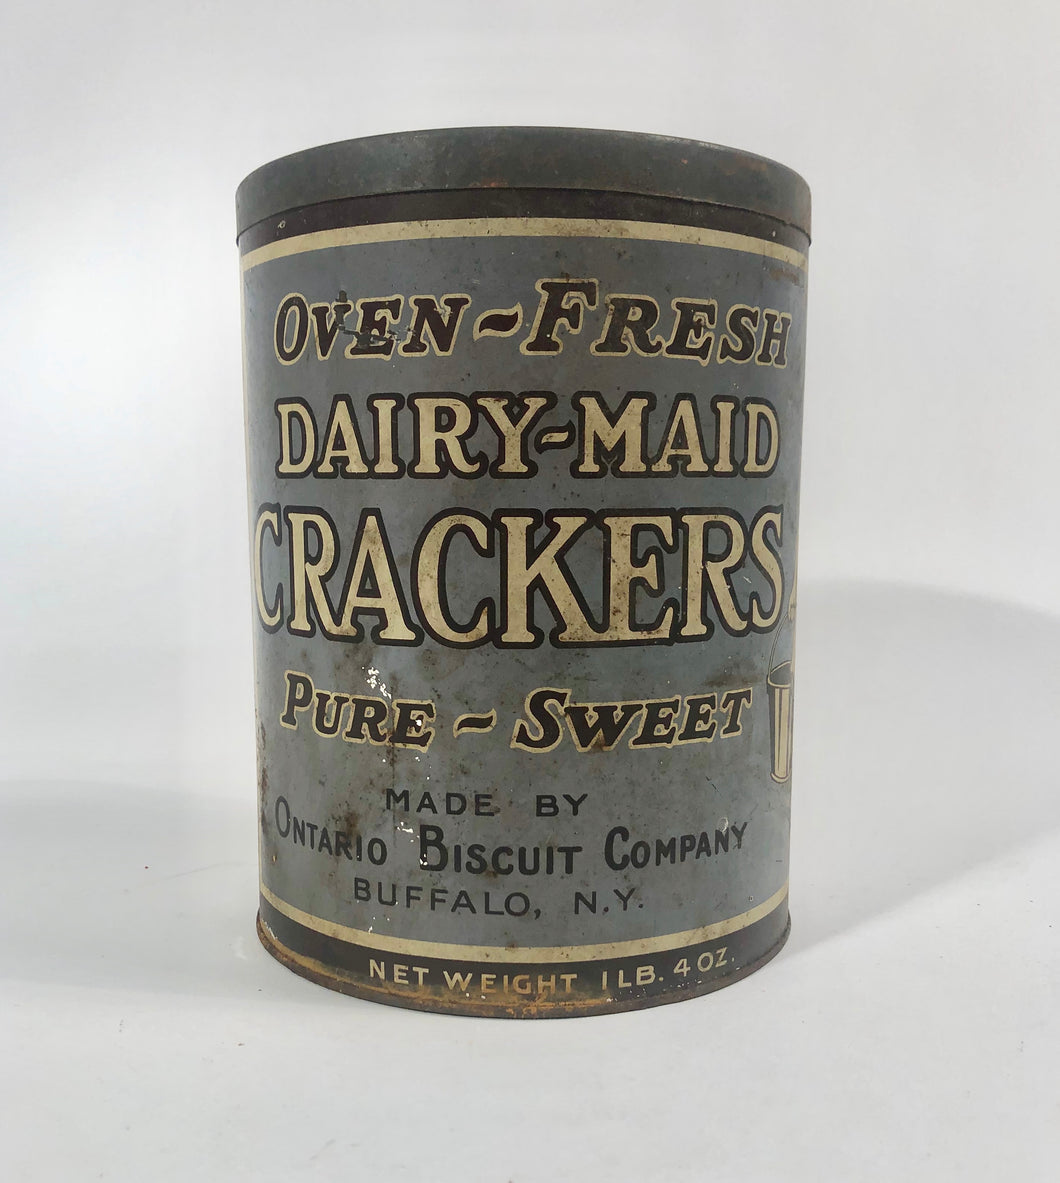 LARGE Oven-Fresh DAIRY-MADE CRACKERS, Pure, Sweet, Ontario Biscuit Co. || Buffalo, N.Y.